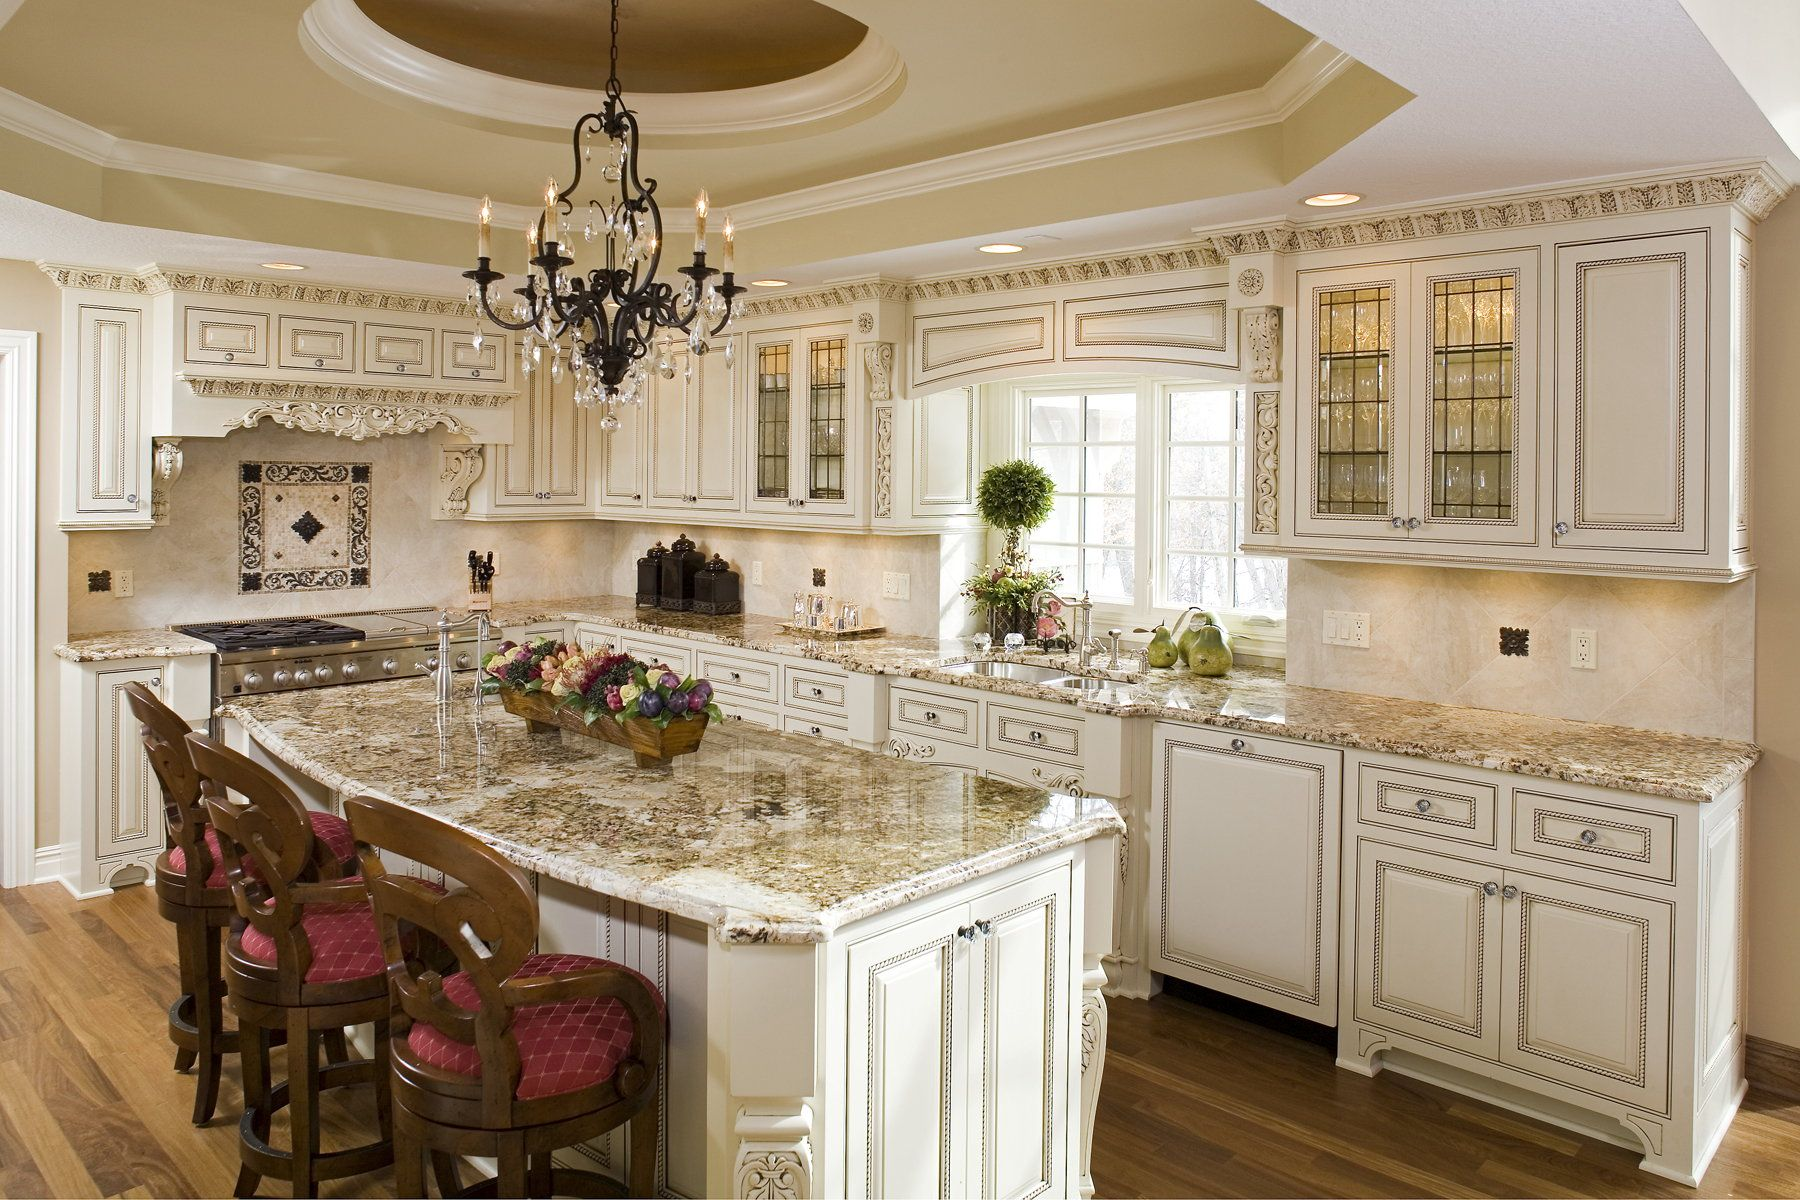 Cream Kitchen Cabinets With Chocolate Glaze Kitchen Off White Kitchens Off White Kitchen Cabinets Glazed Kitchen Cabinets